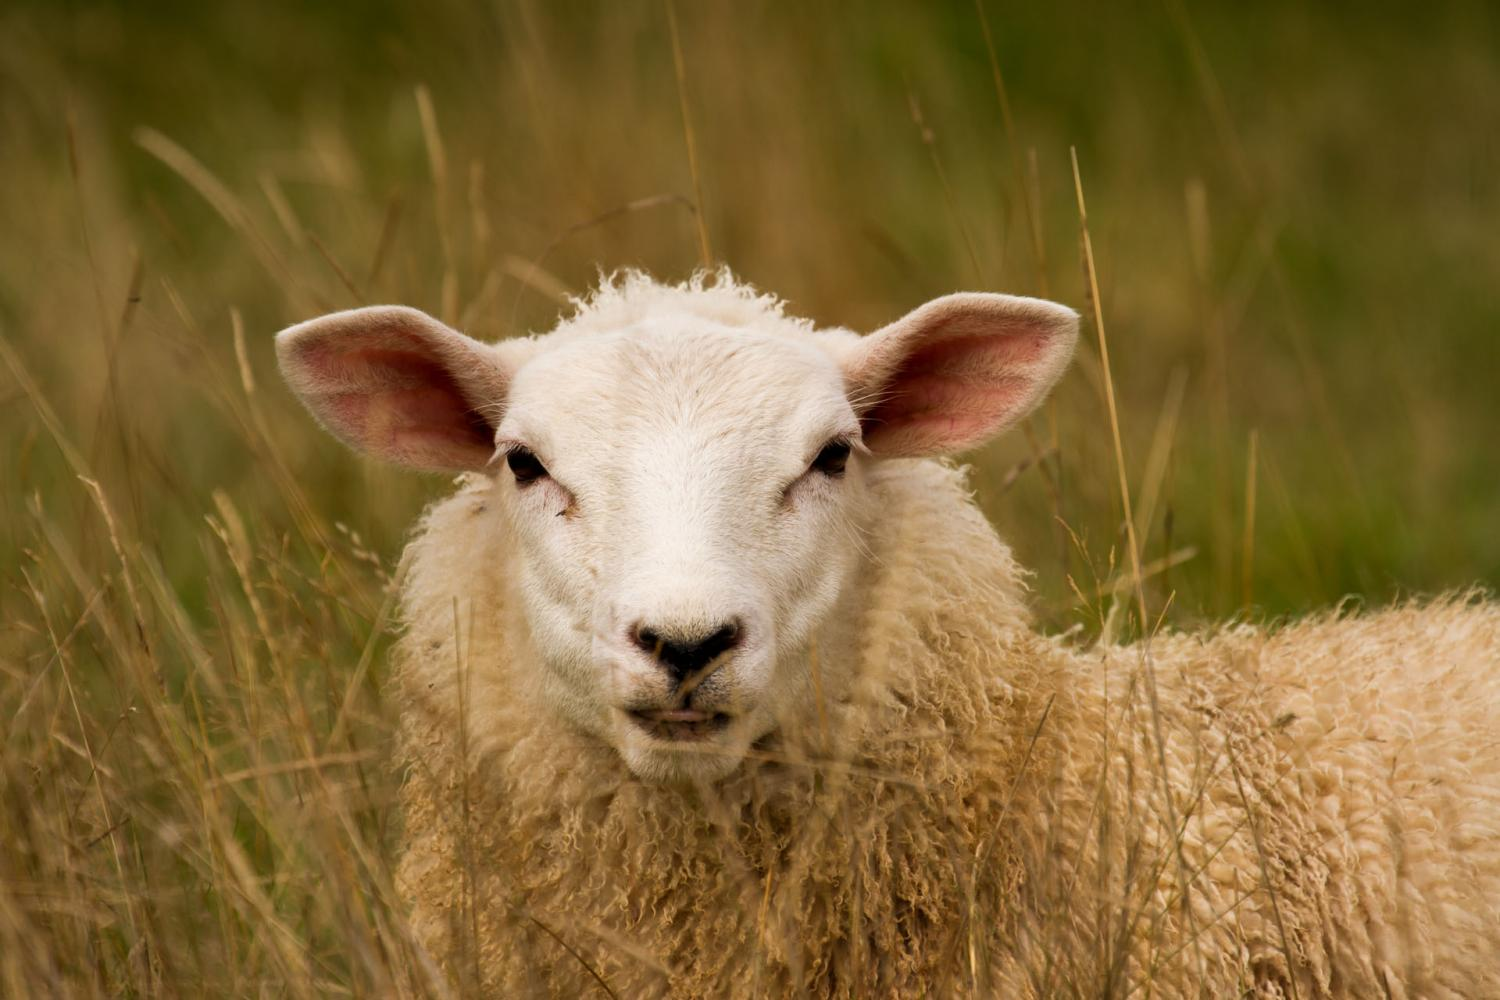 Sheep are able to recognize human faces from photographs